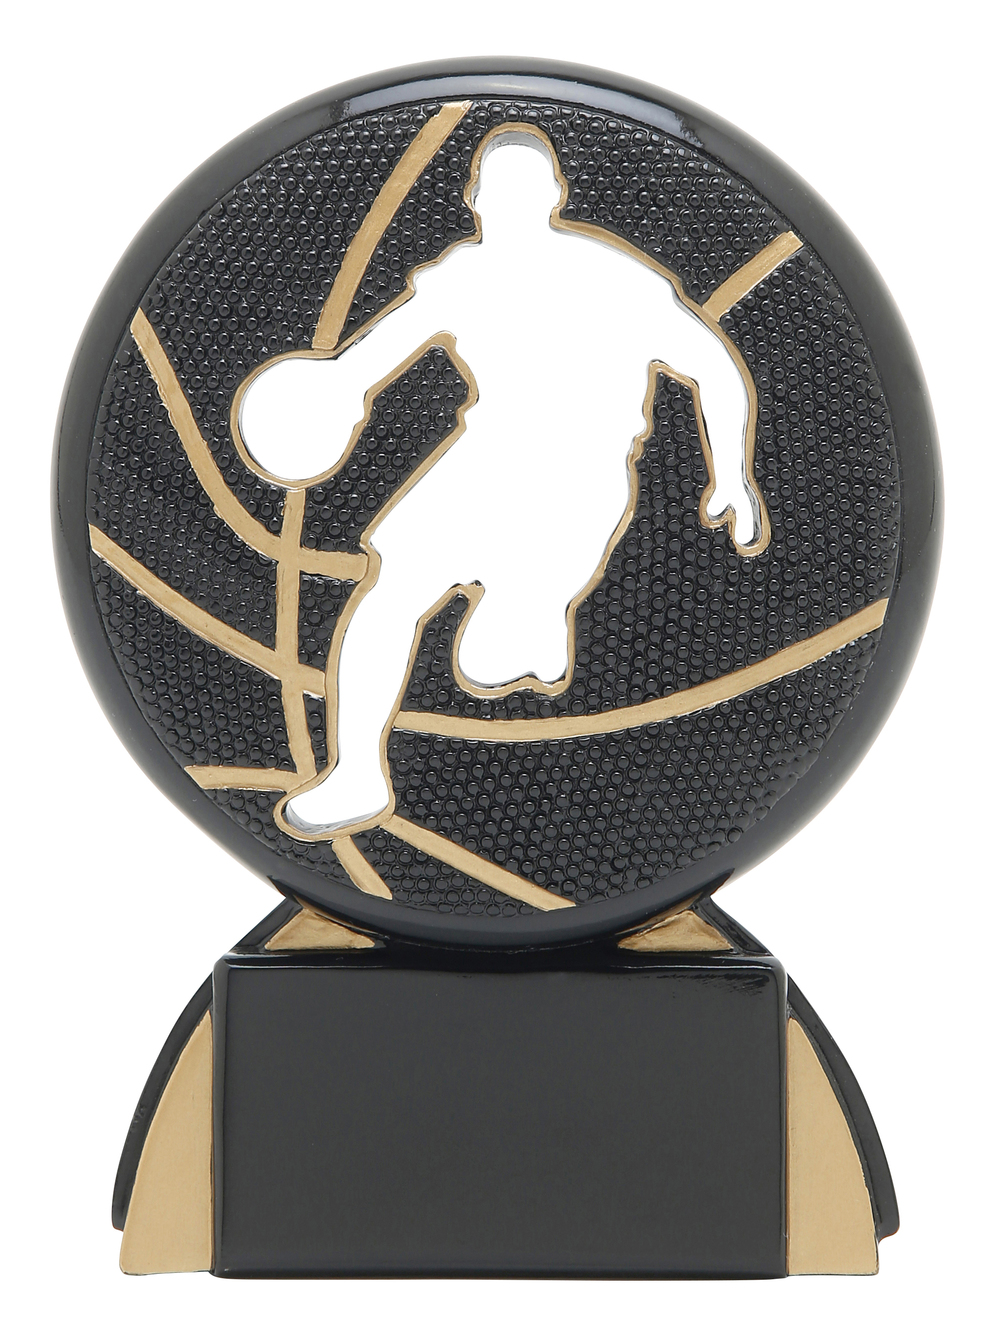 "Basketball - Male Large - 24805GS - 5.25"" Small - 24705GS - 4.25"""